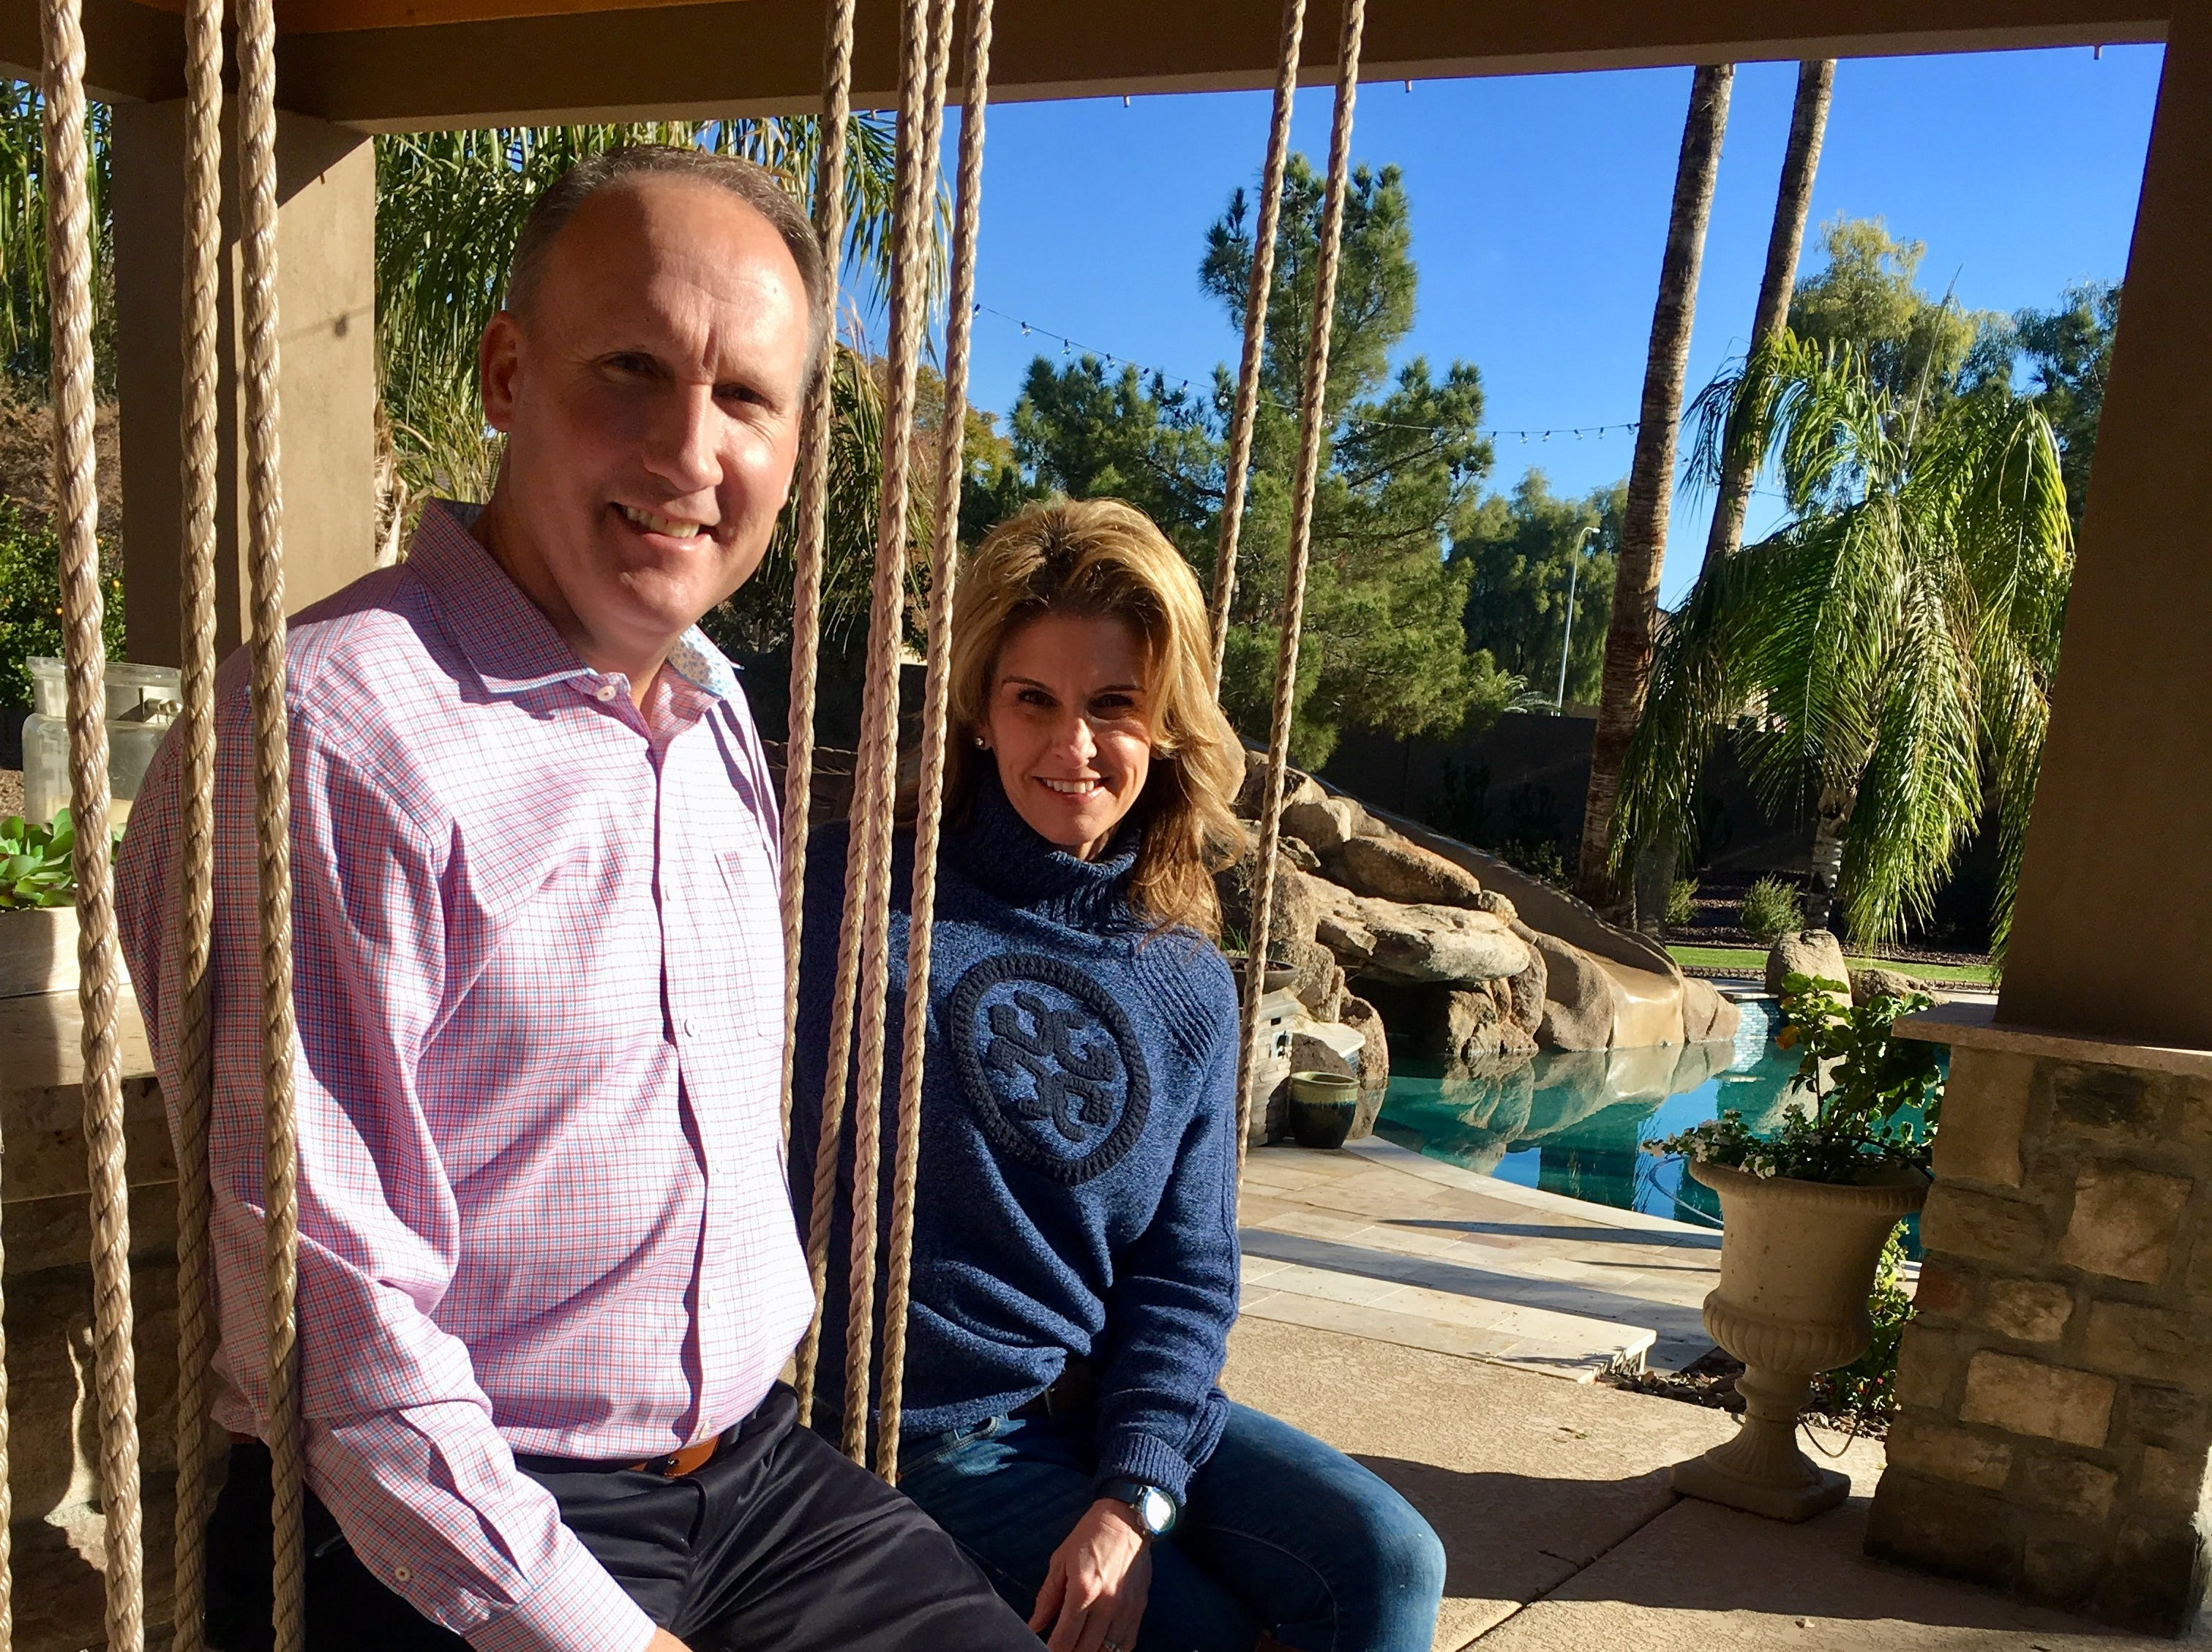 Holly and Todd Revenig purchased their 1999 Chandler home in 2016. Renovations included the poolside ramada and these swings, inspired by a trip to Cancun.